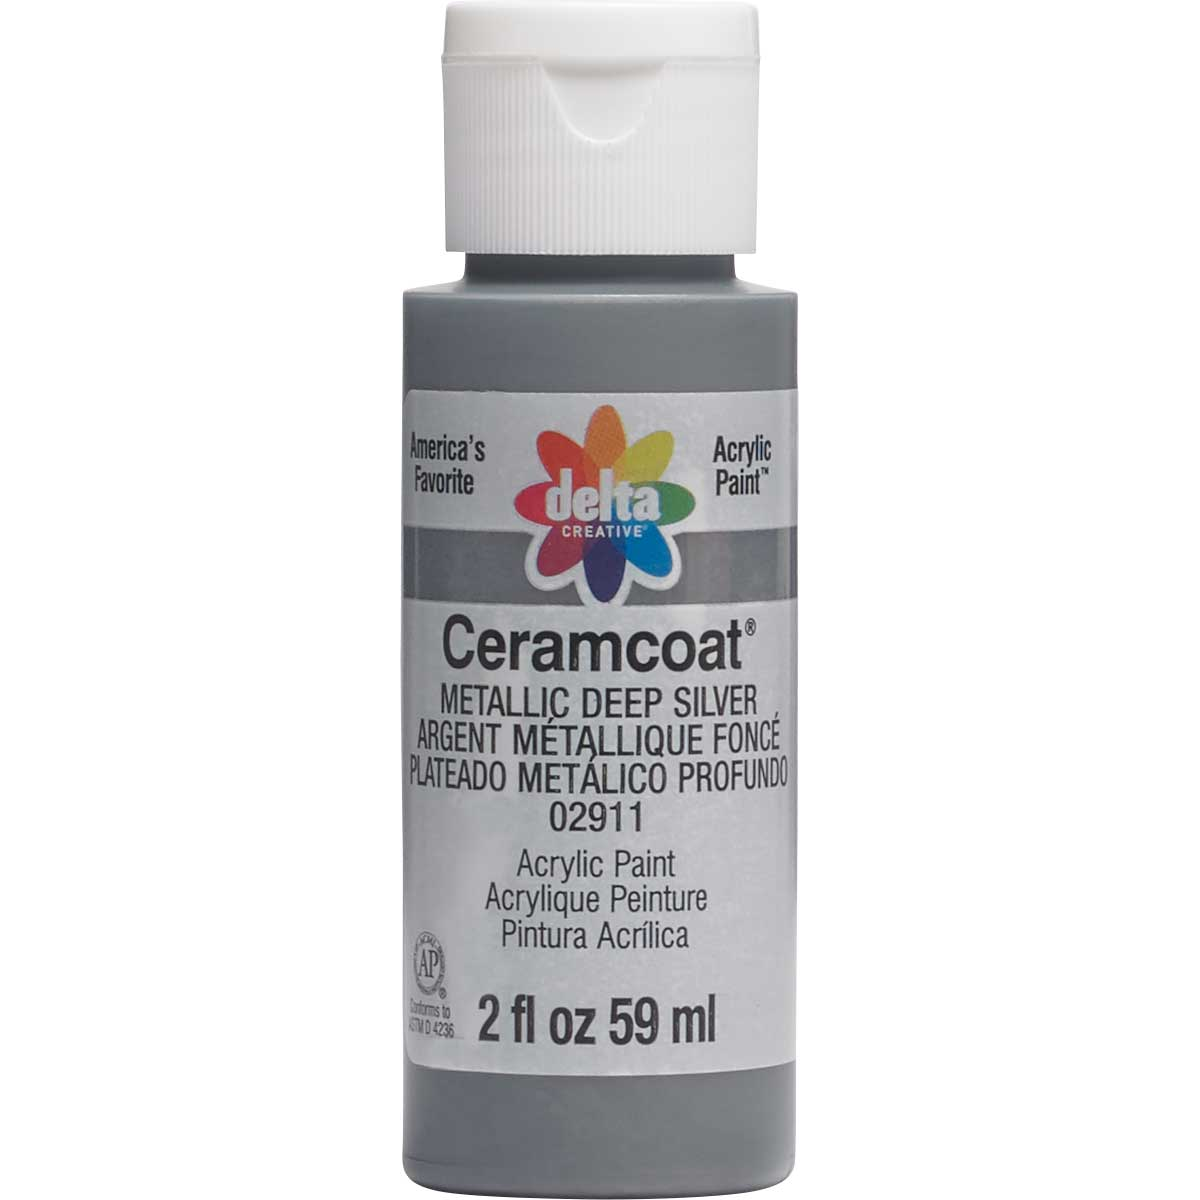 Delta Ceramcoat ® Acrylic Paint - Metallic Deep Silver, 2 oz.